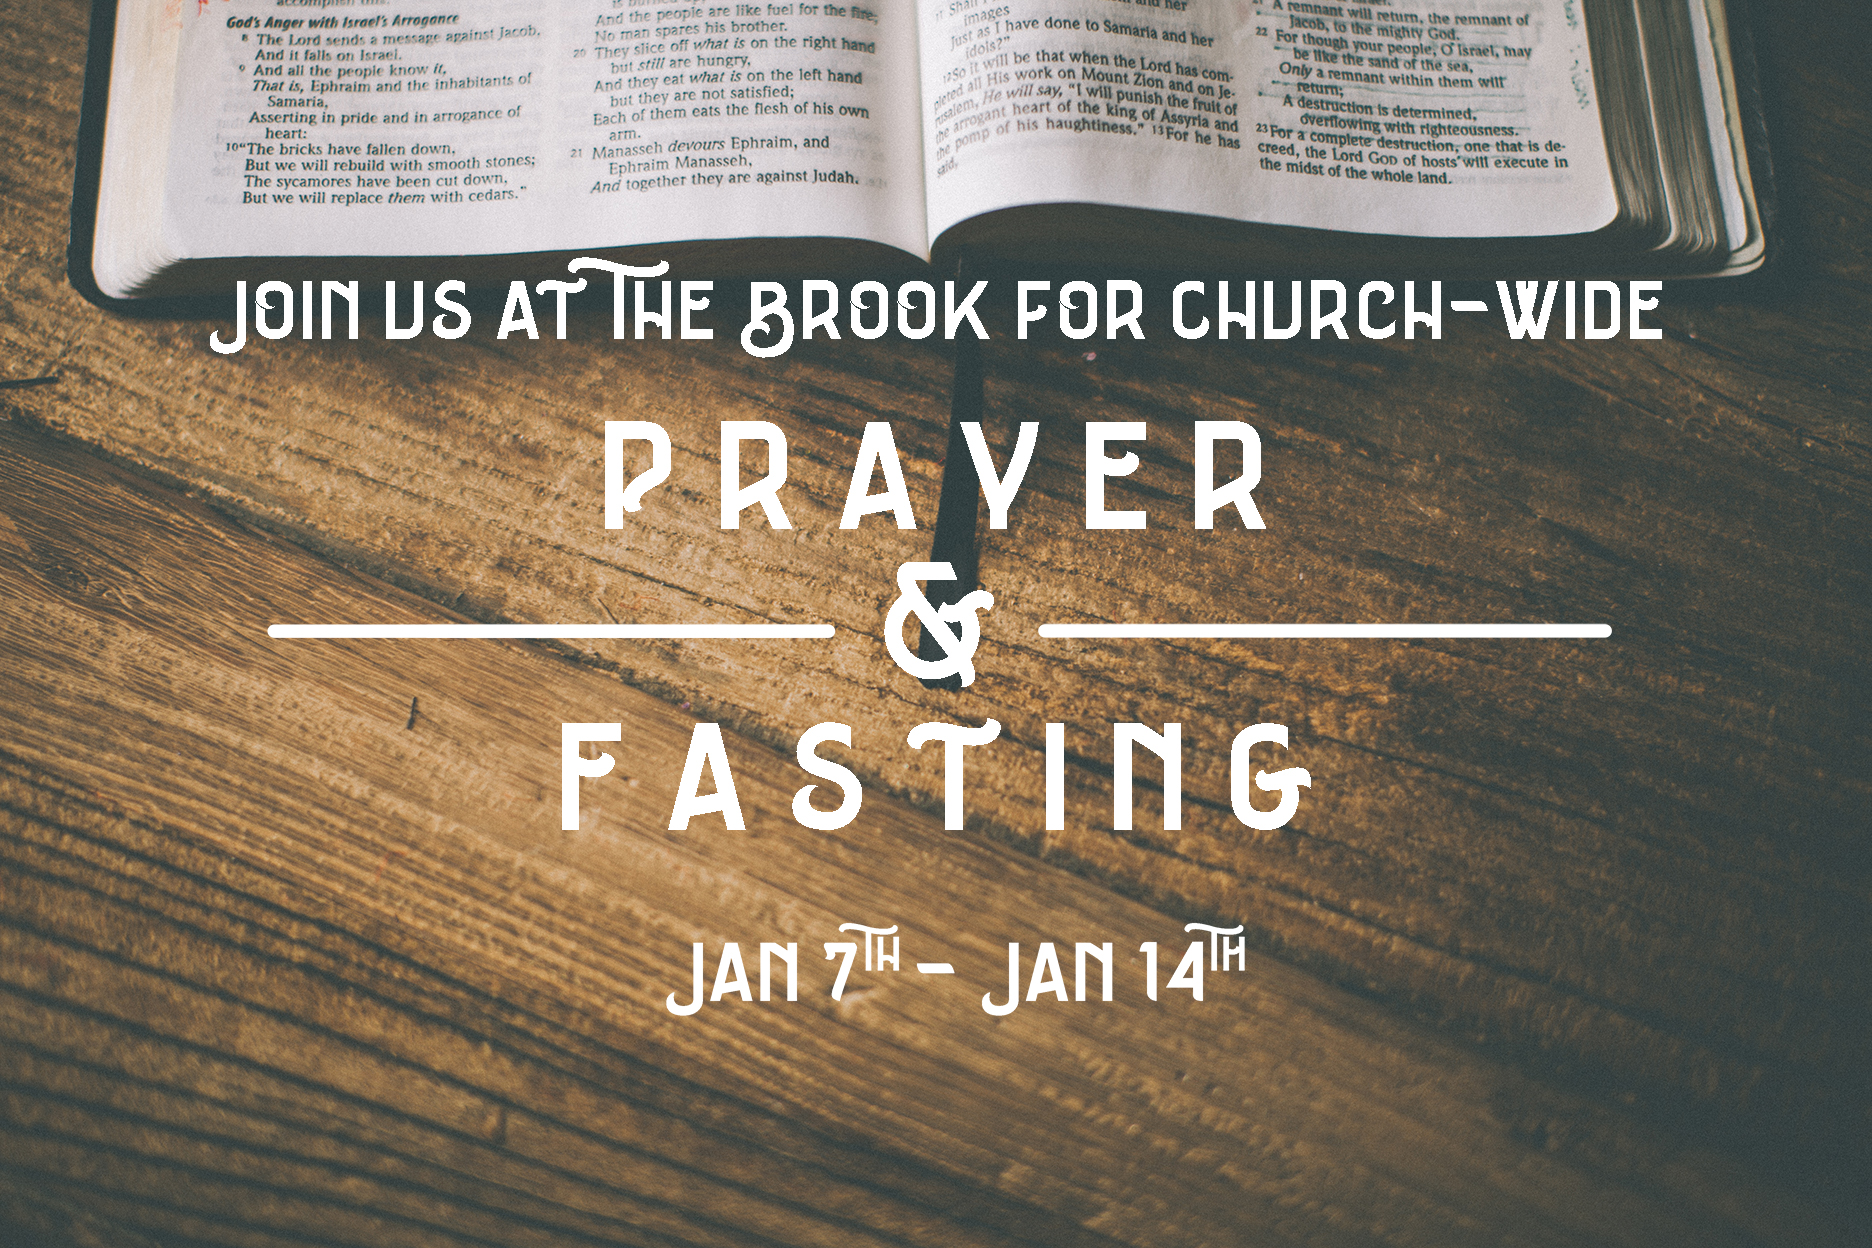 Prayer & Fasting at the Brook